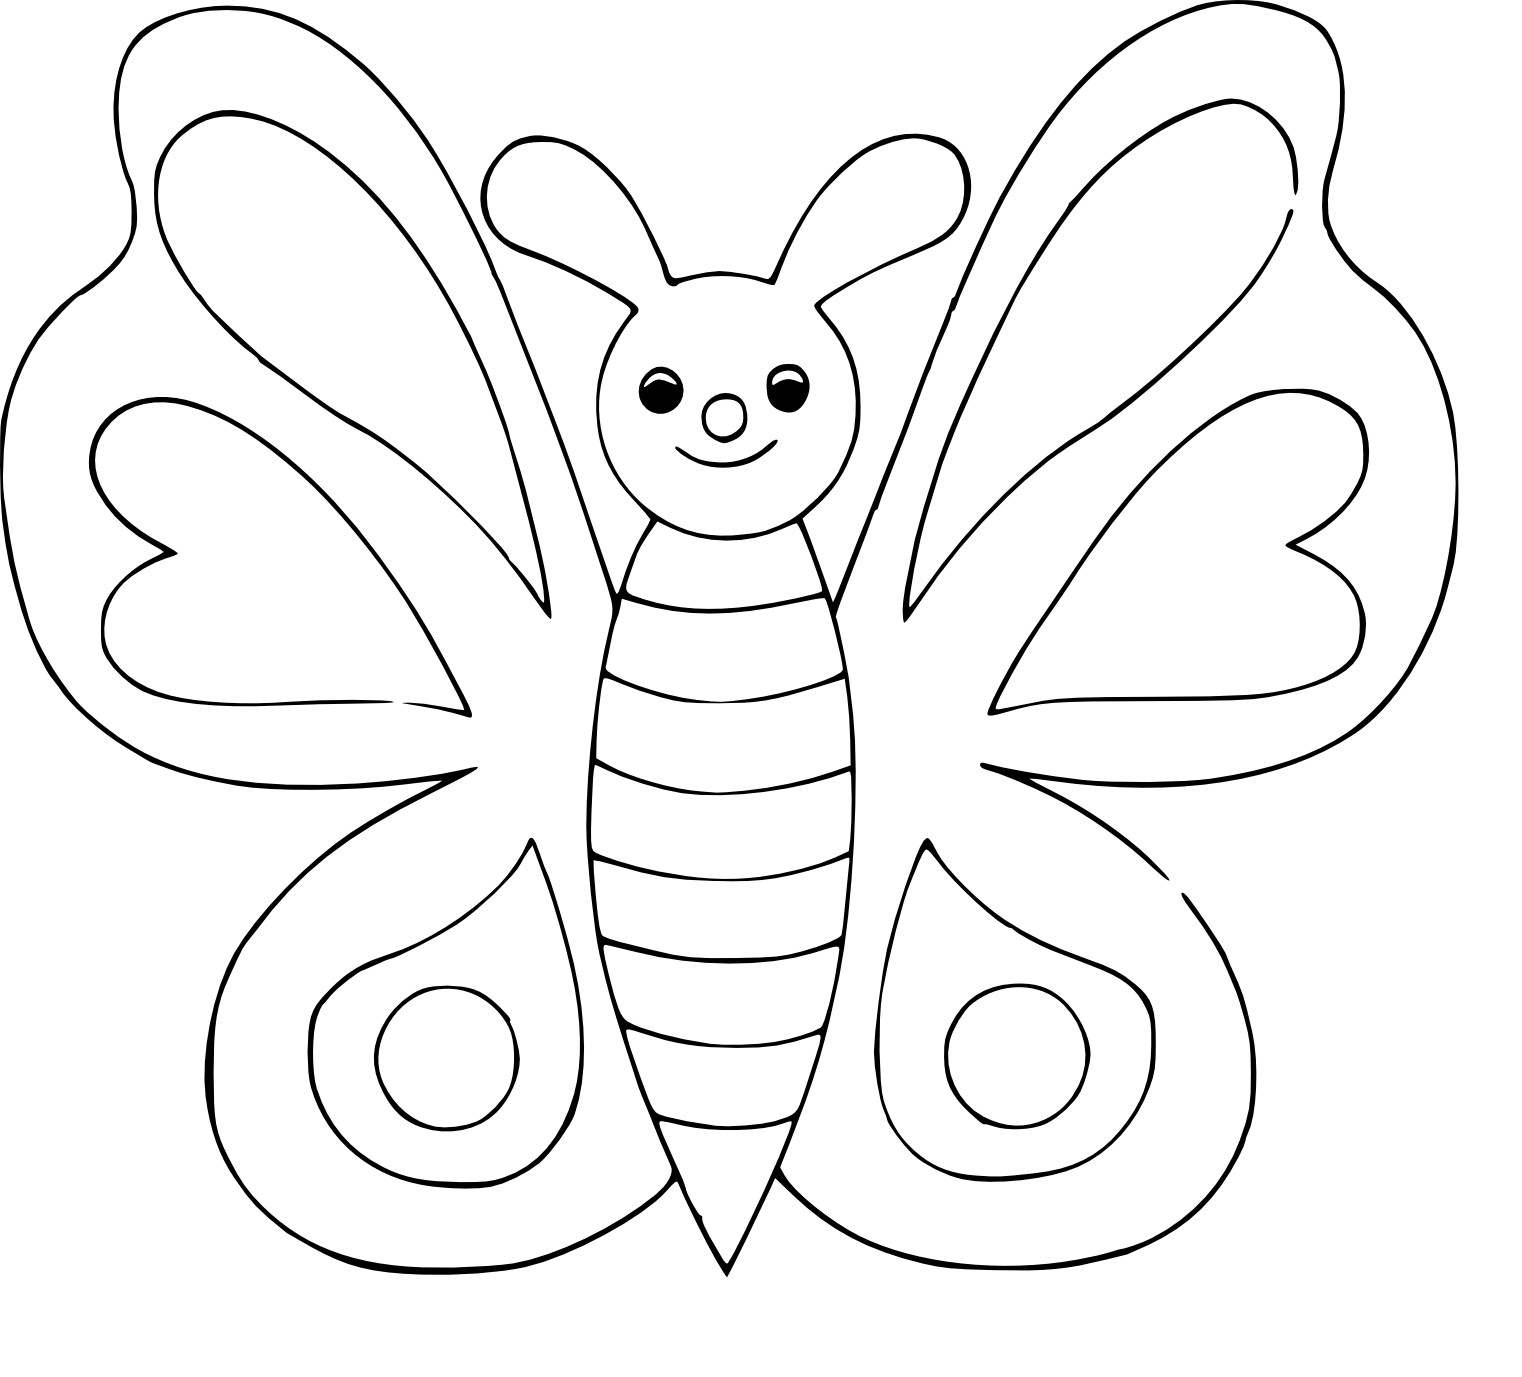 Coloriage papillon simple imprimer - Coloriage de papillon ...